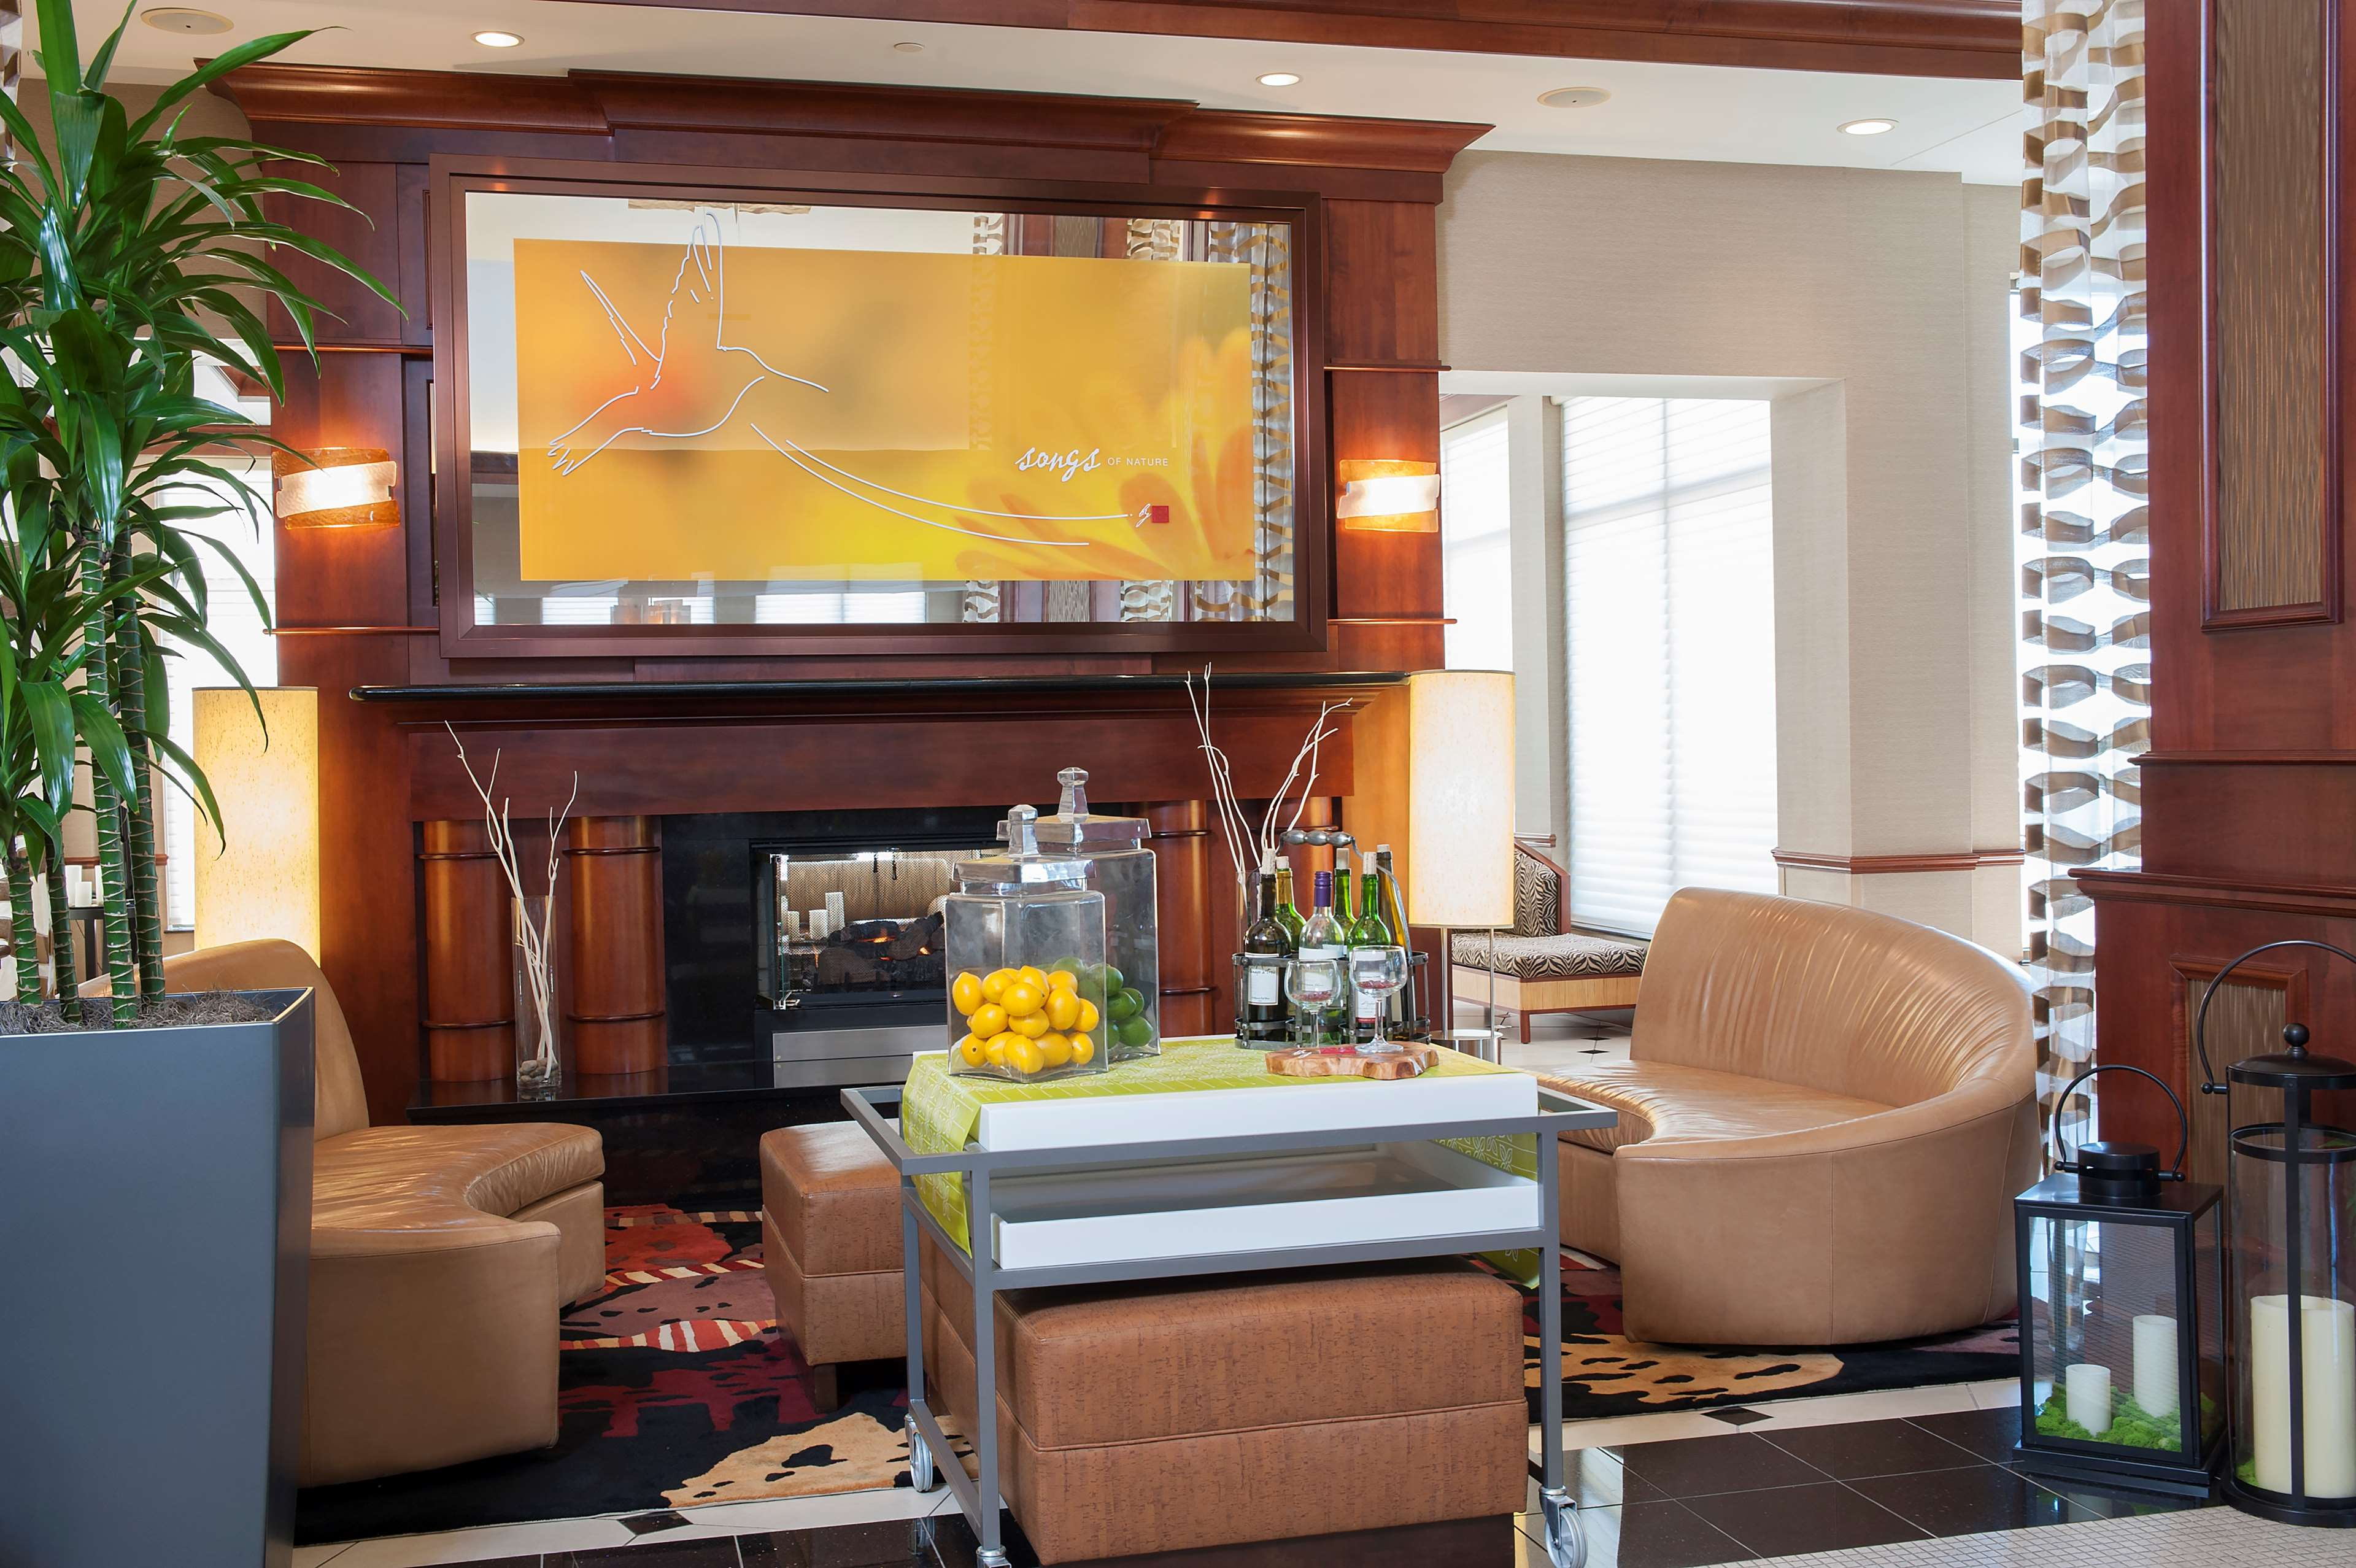 Hilton garden inn indianapolis south greenwood 5255 noggle way indianapolis in hotels motels for Hilton garden inn greenwood indiana